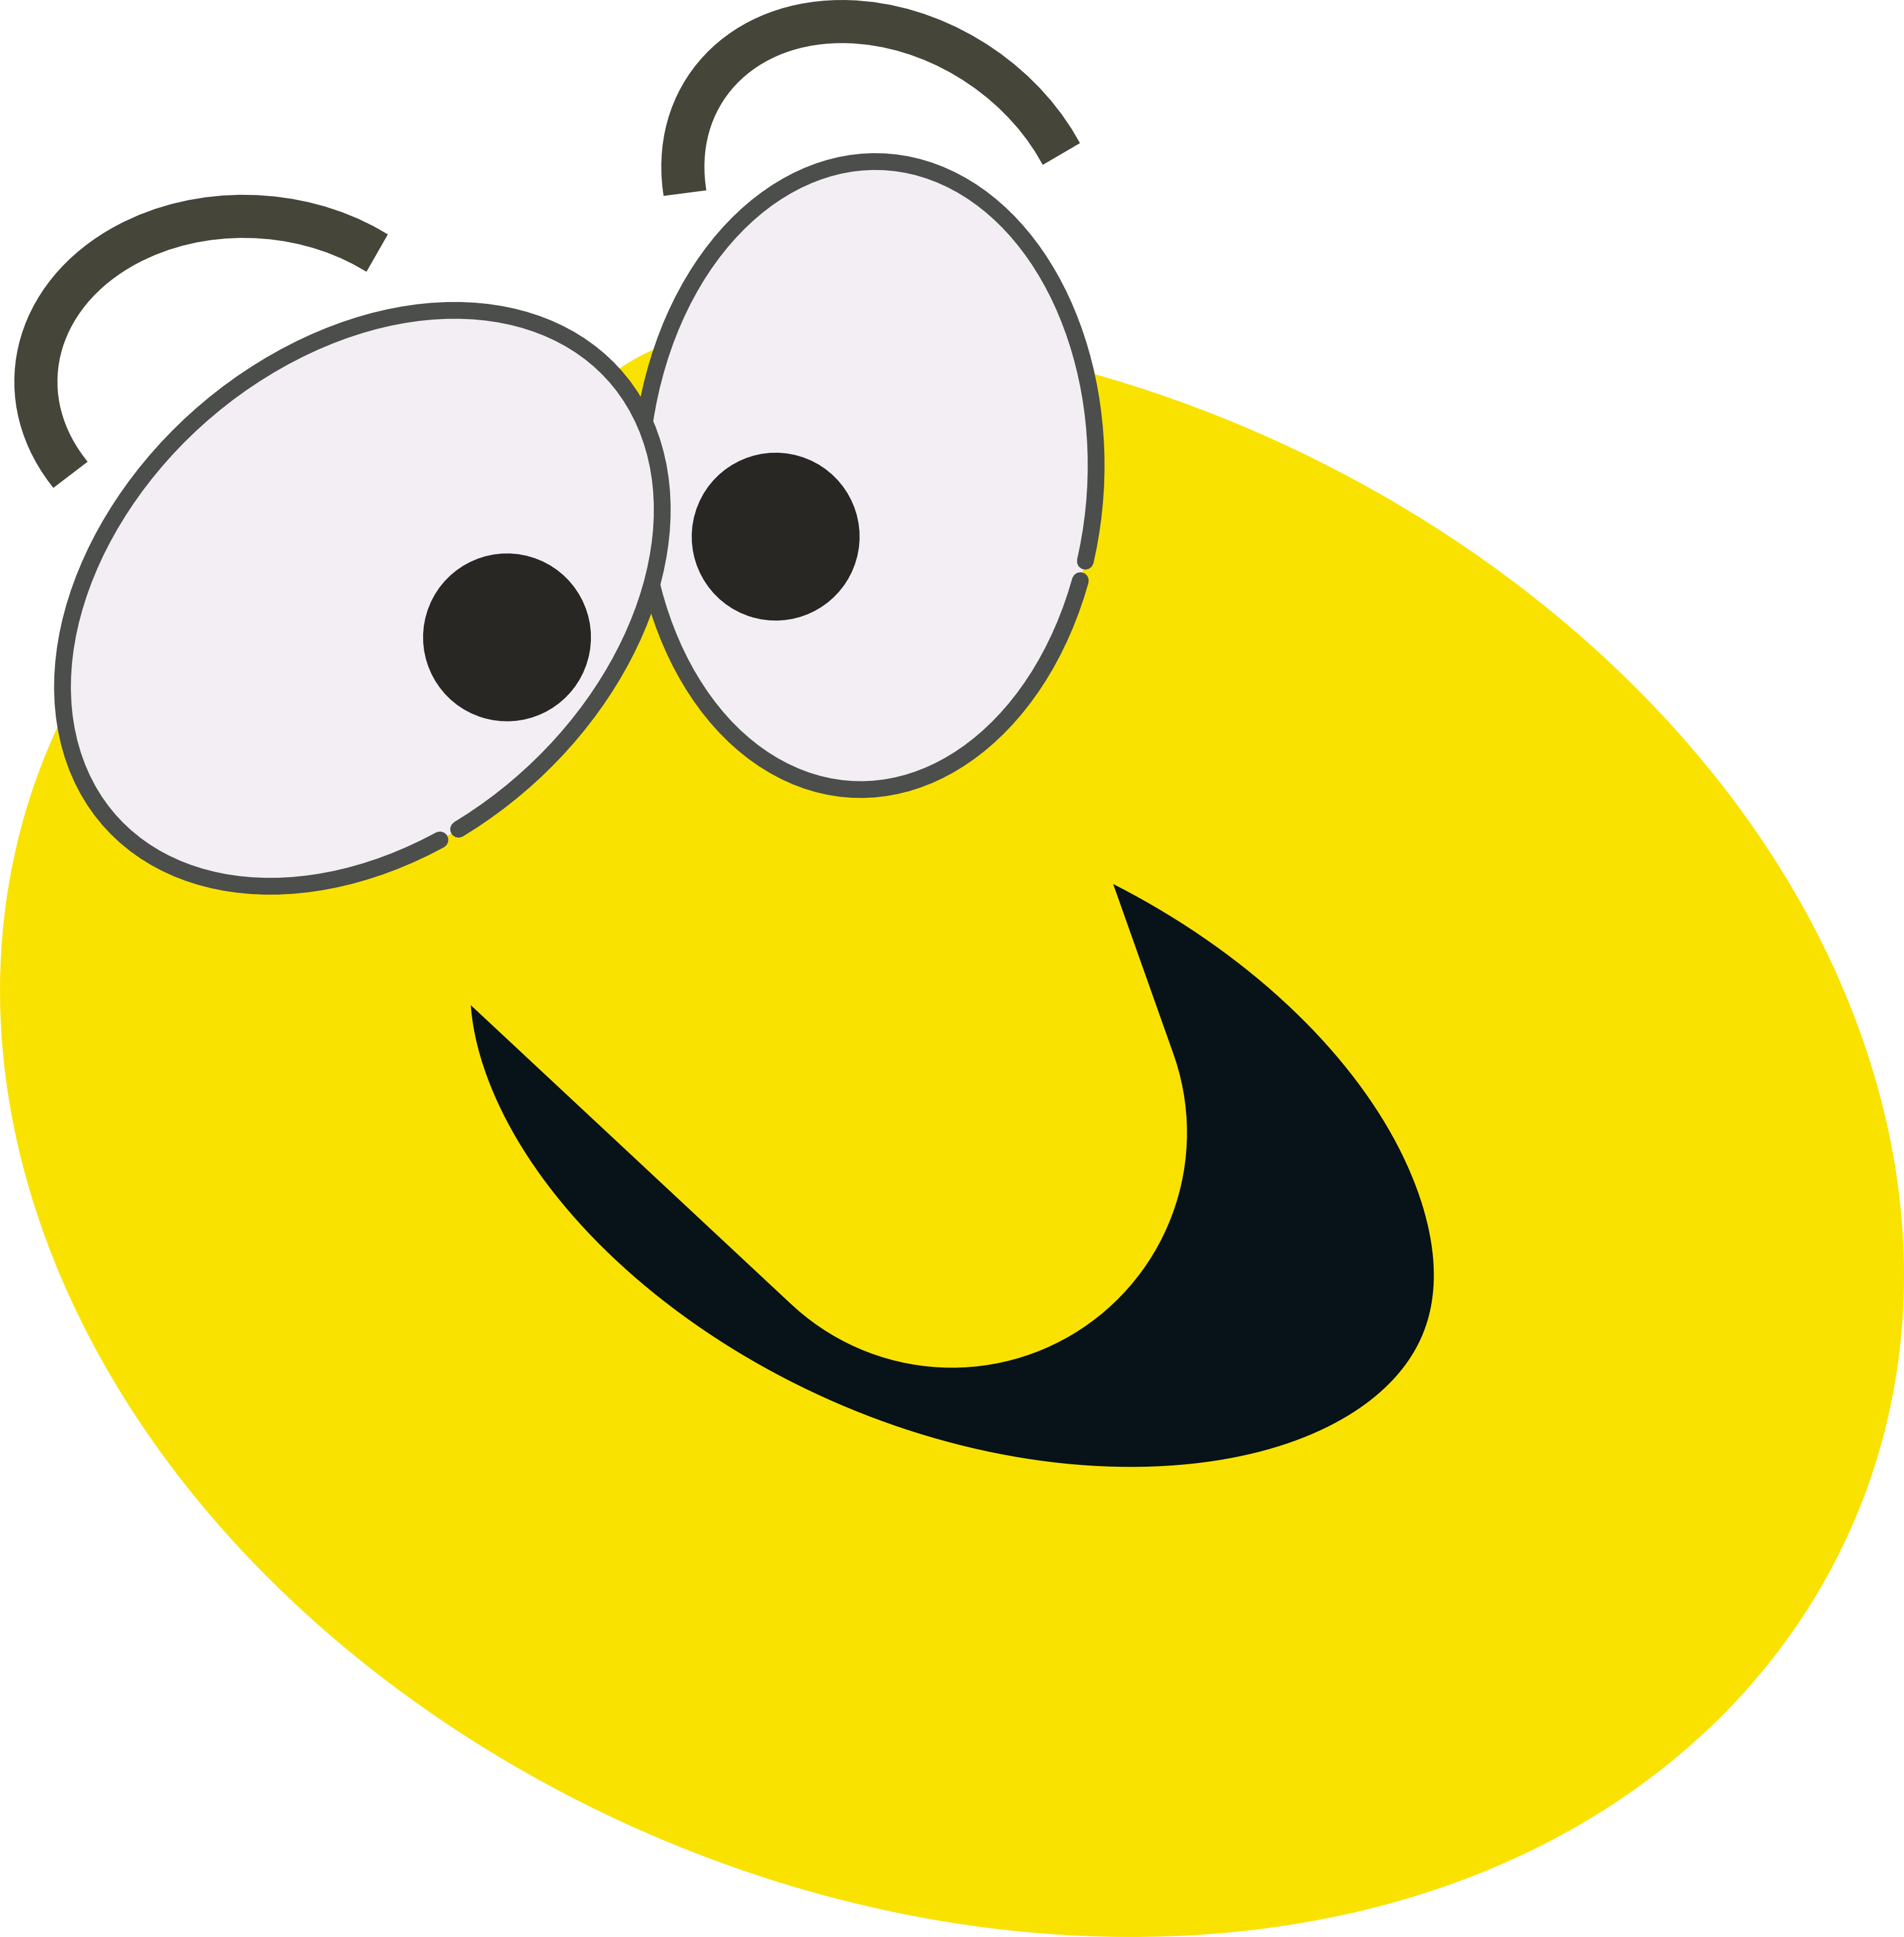 Smiley Face Clip Art Animated   Clipart Panda   Free Clipart Images